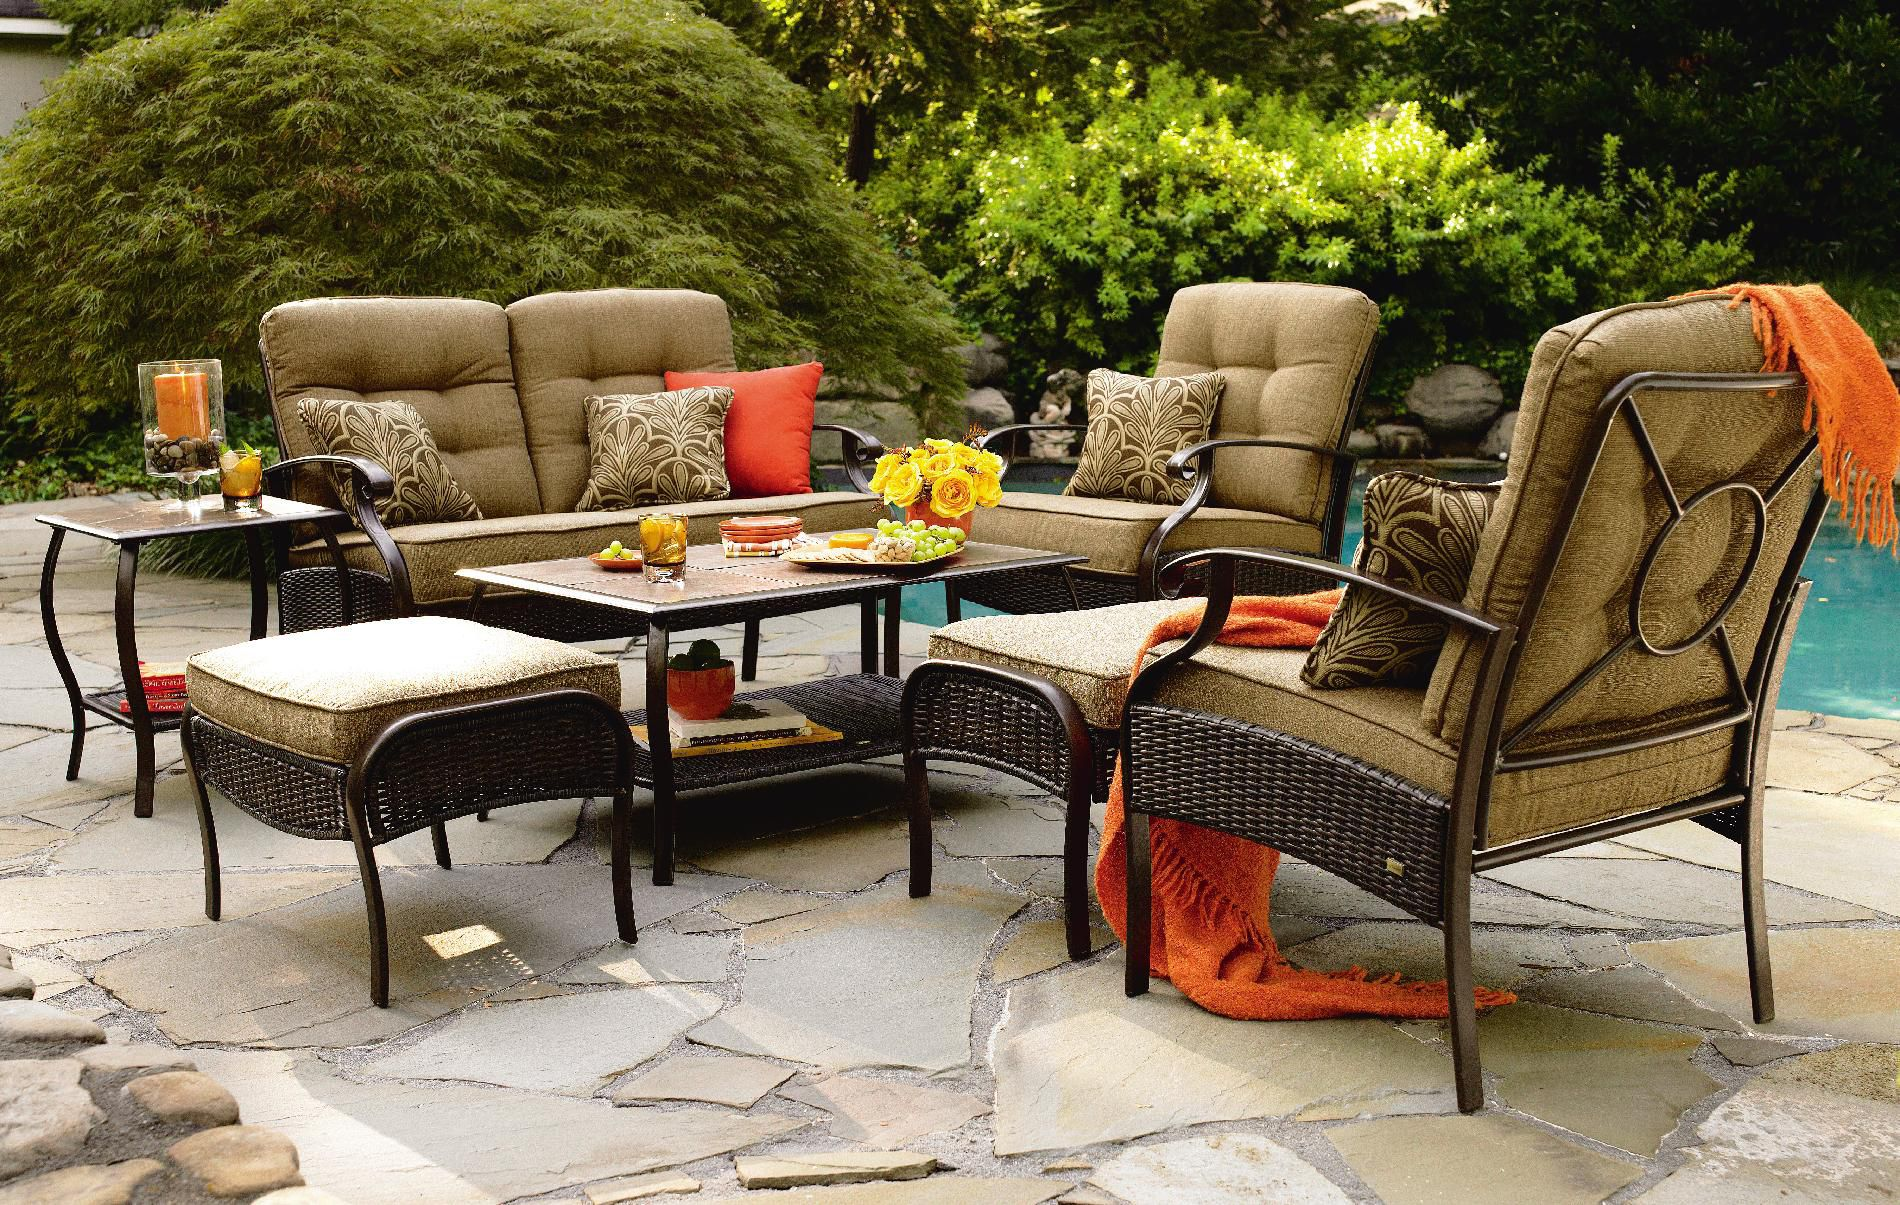 La-Z-Boy Outdoor Bradley 4 Pc. Seating Set